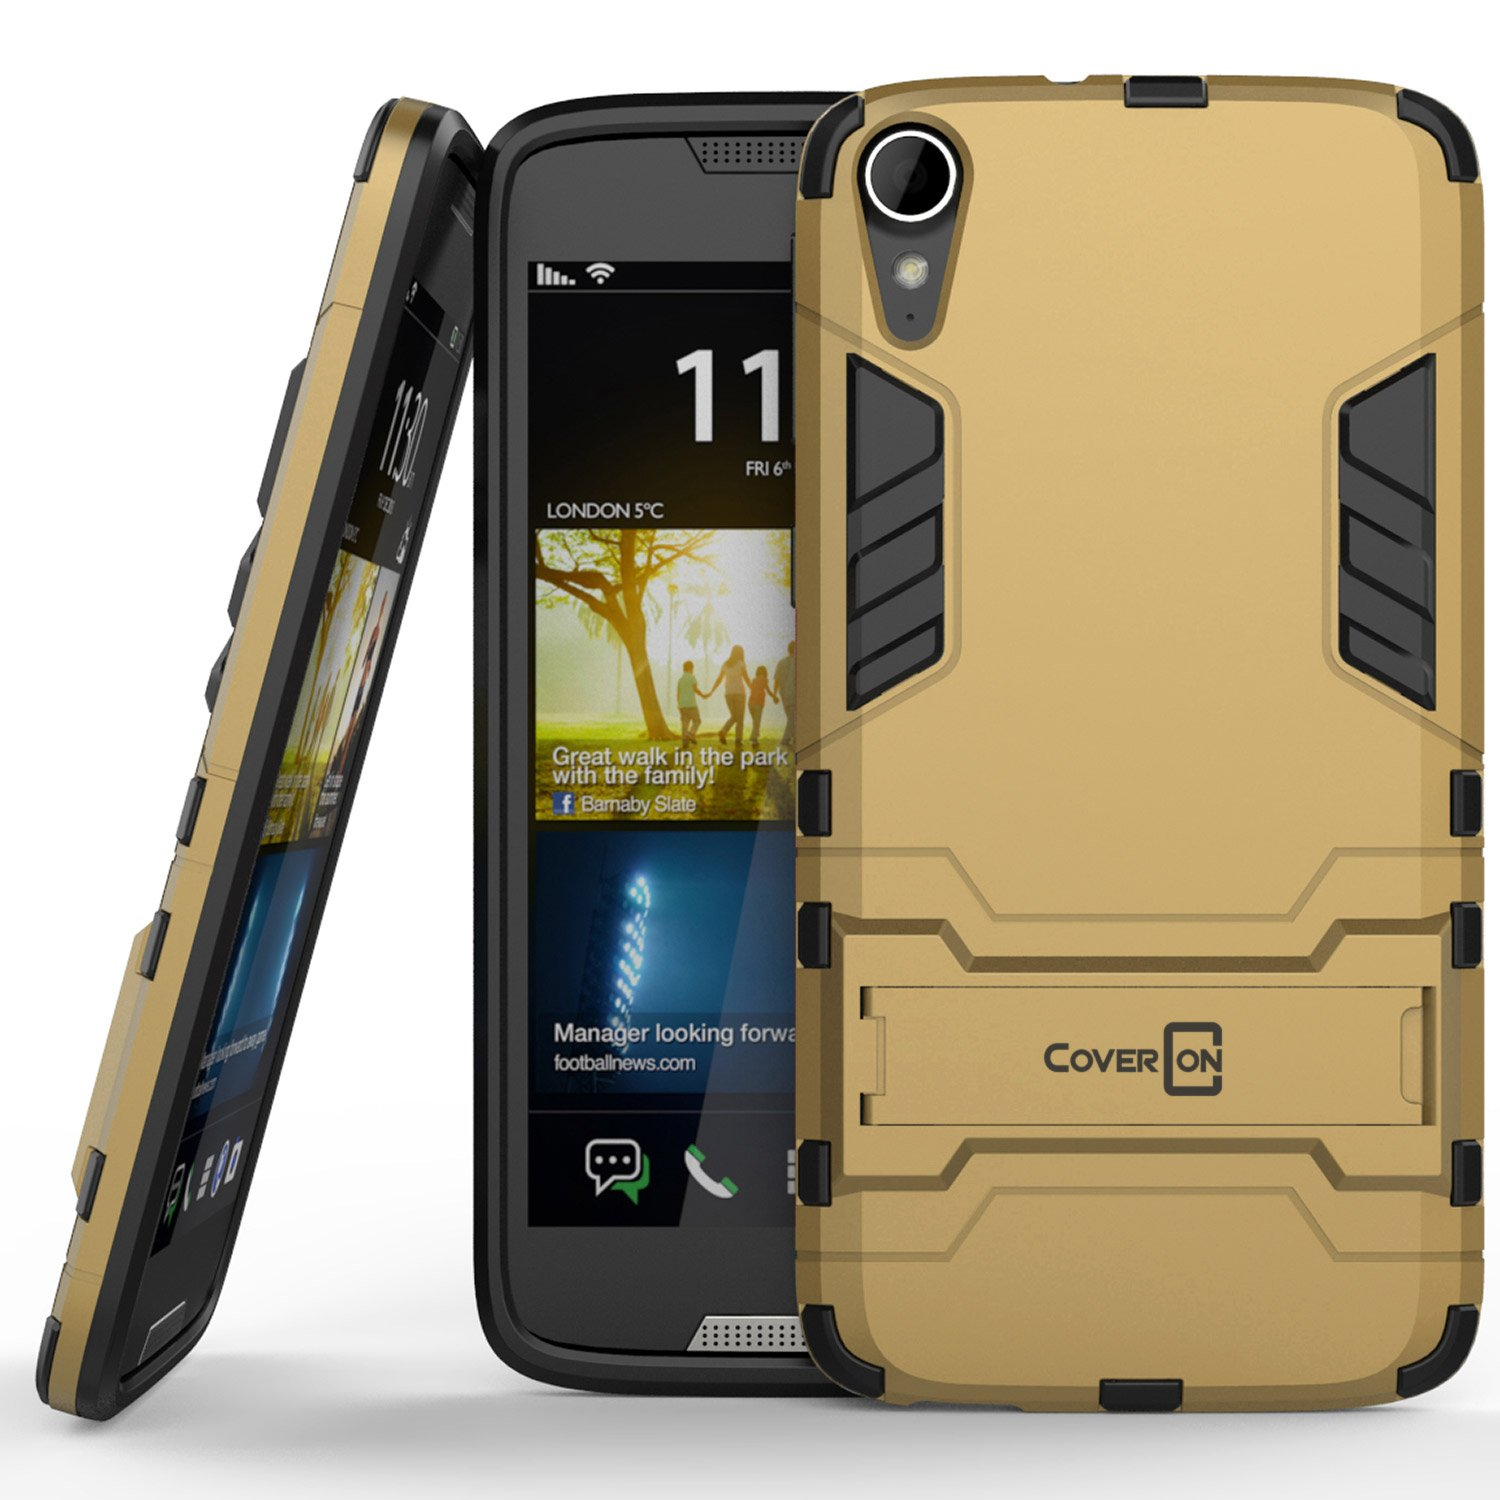 low priced c748d f7820 HTC Desire 828 Case, CoverON [Shadow Armor Series] Hard Slim Hybrid  Kickstand Phone Cover Case for HTC Desire 828 - Gold & Black